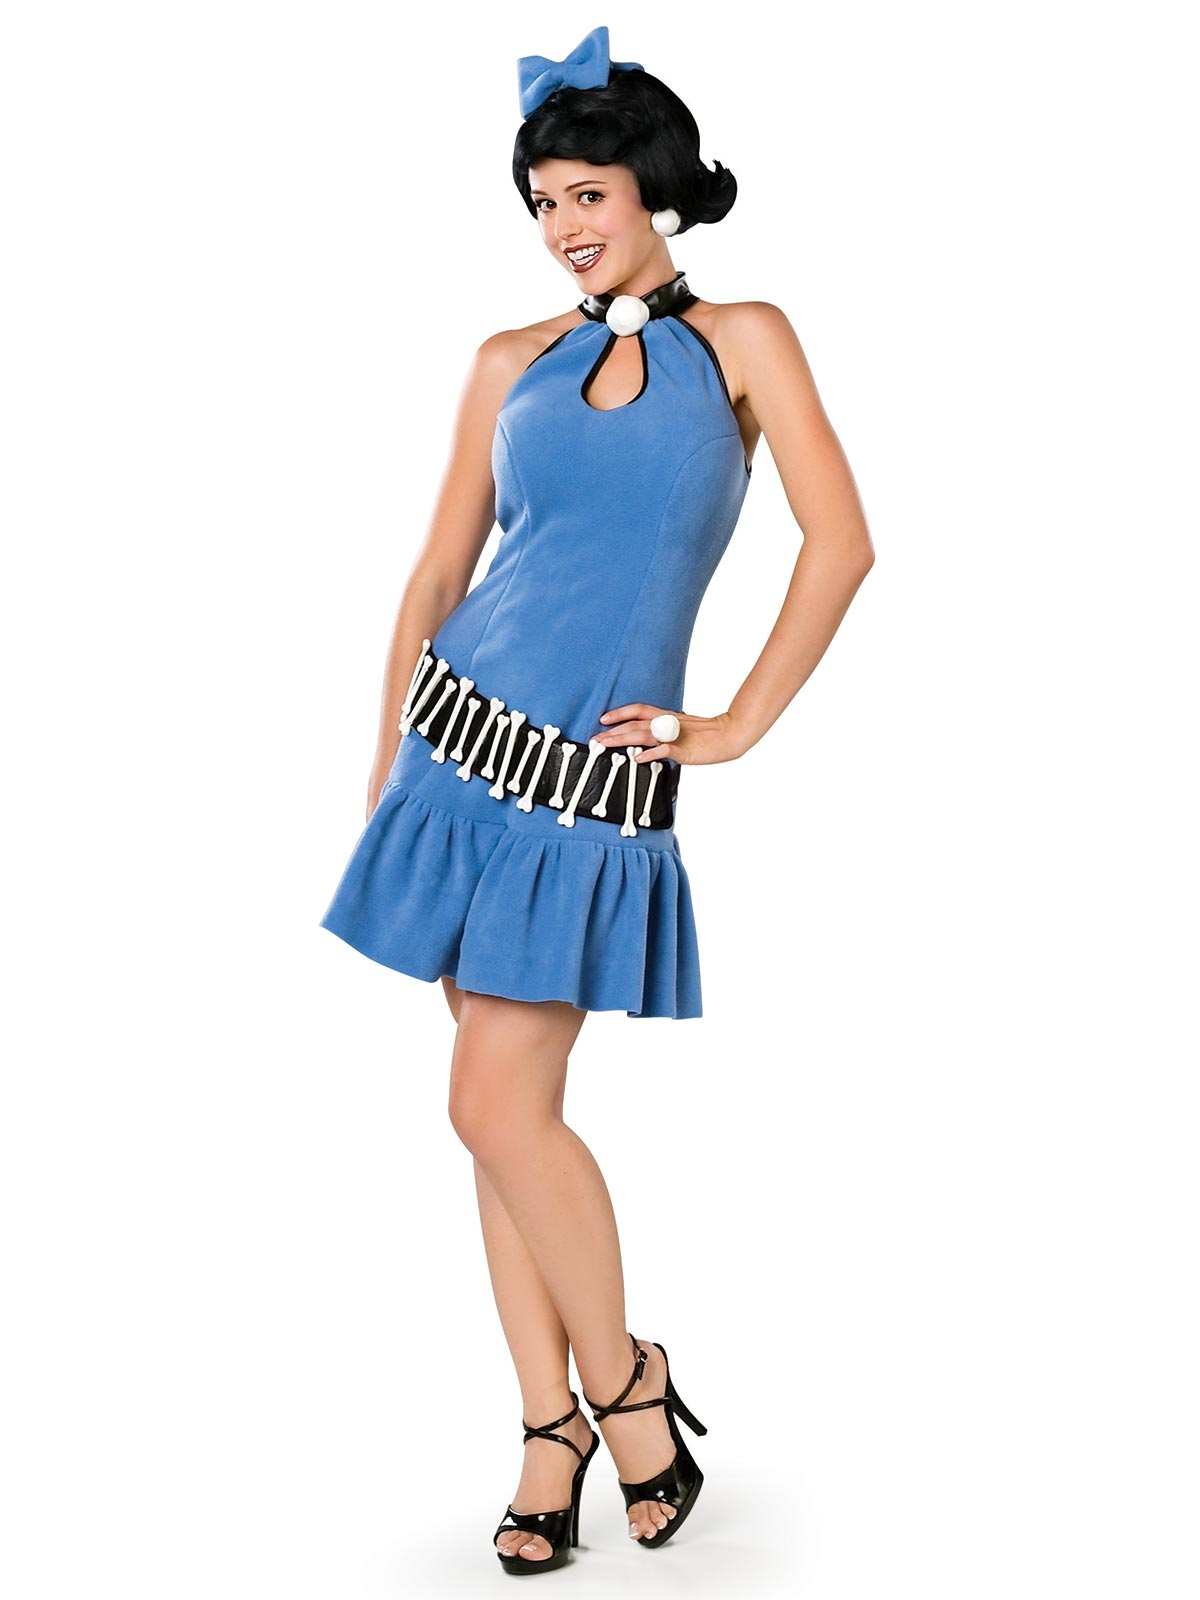 Betty Rubble The Flintstones Costume - Buy Online Only